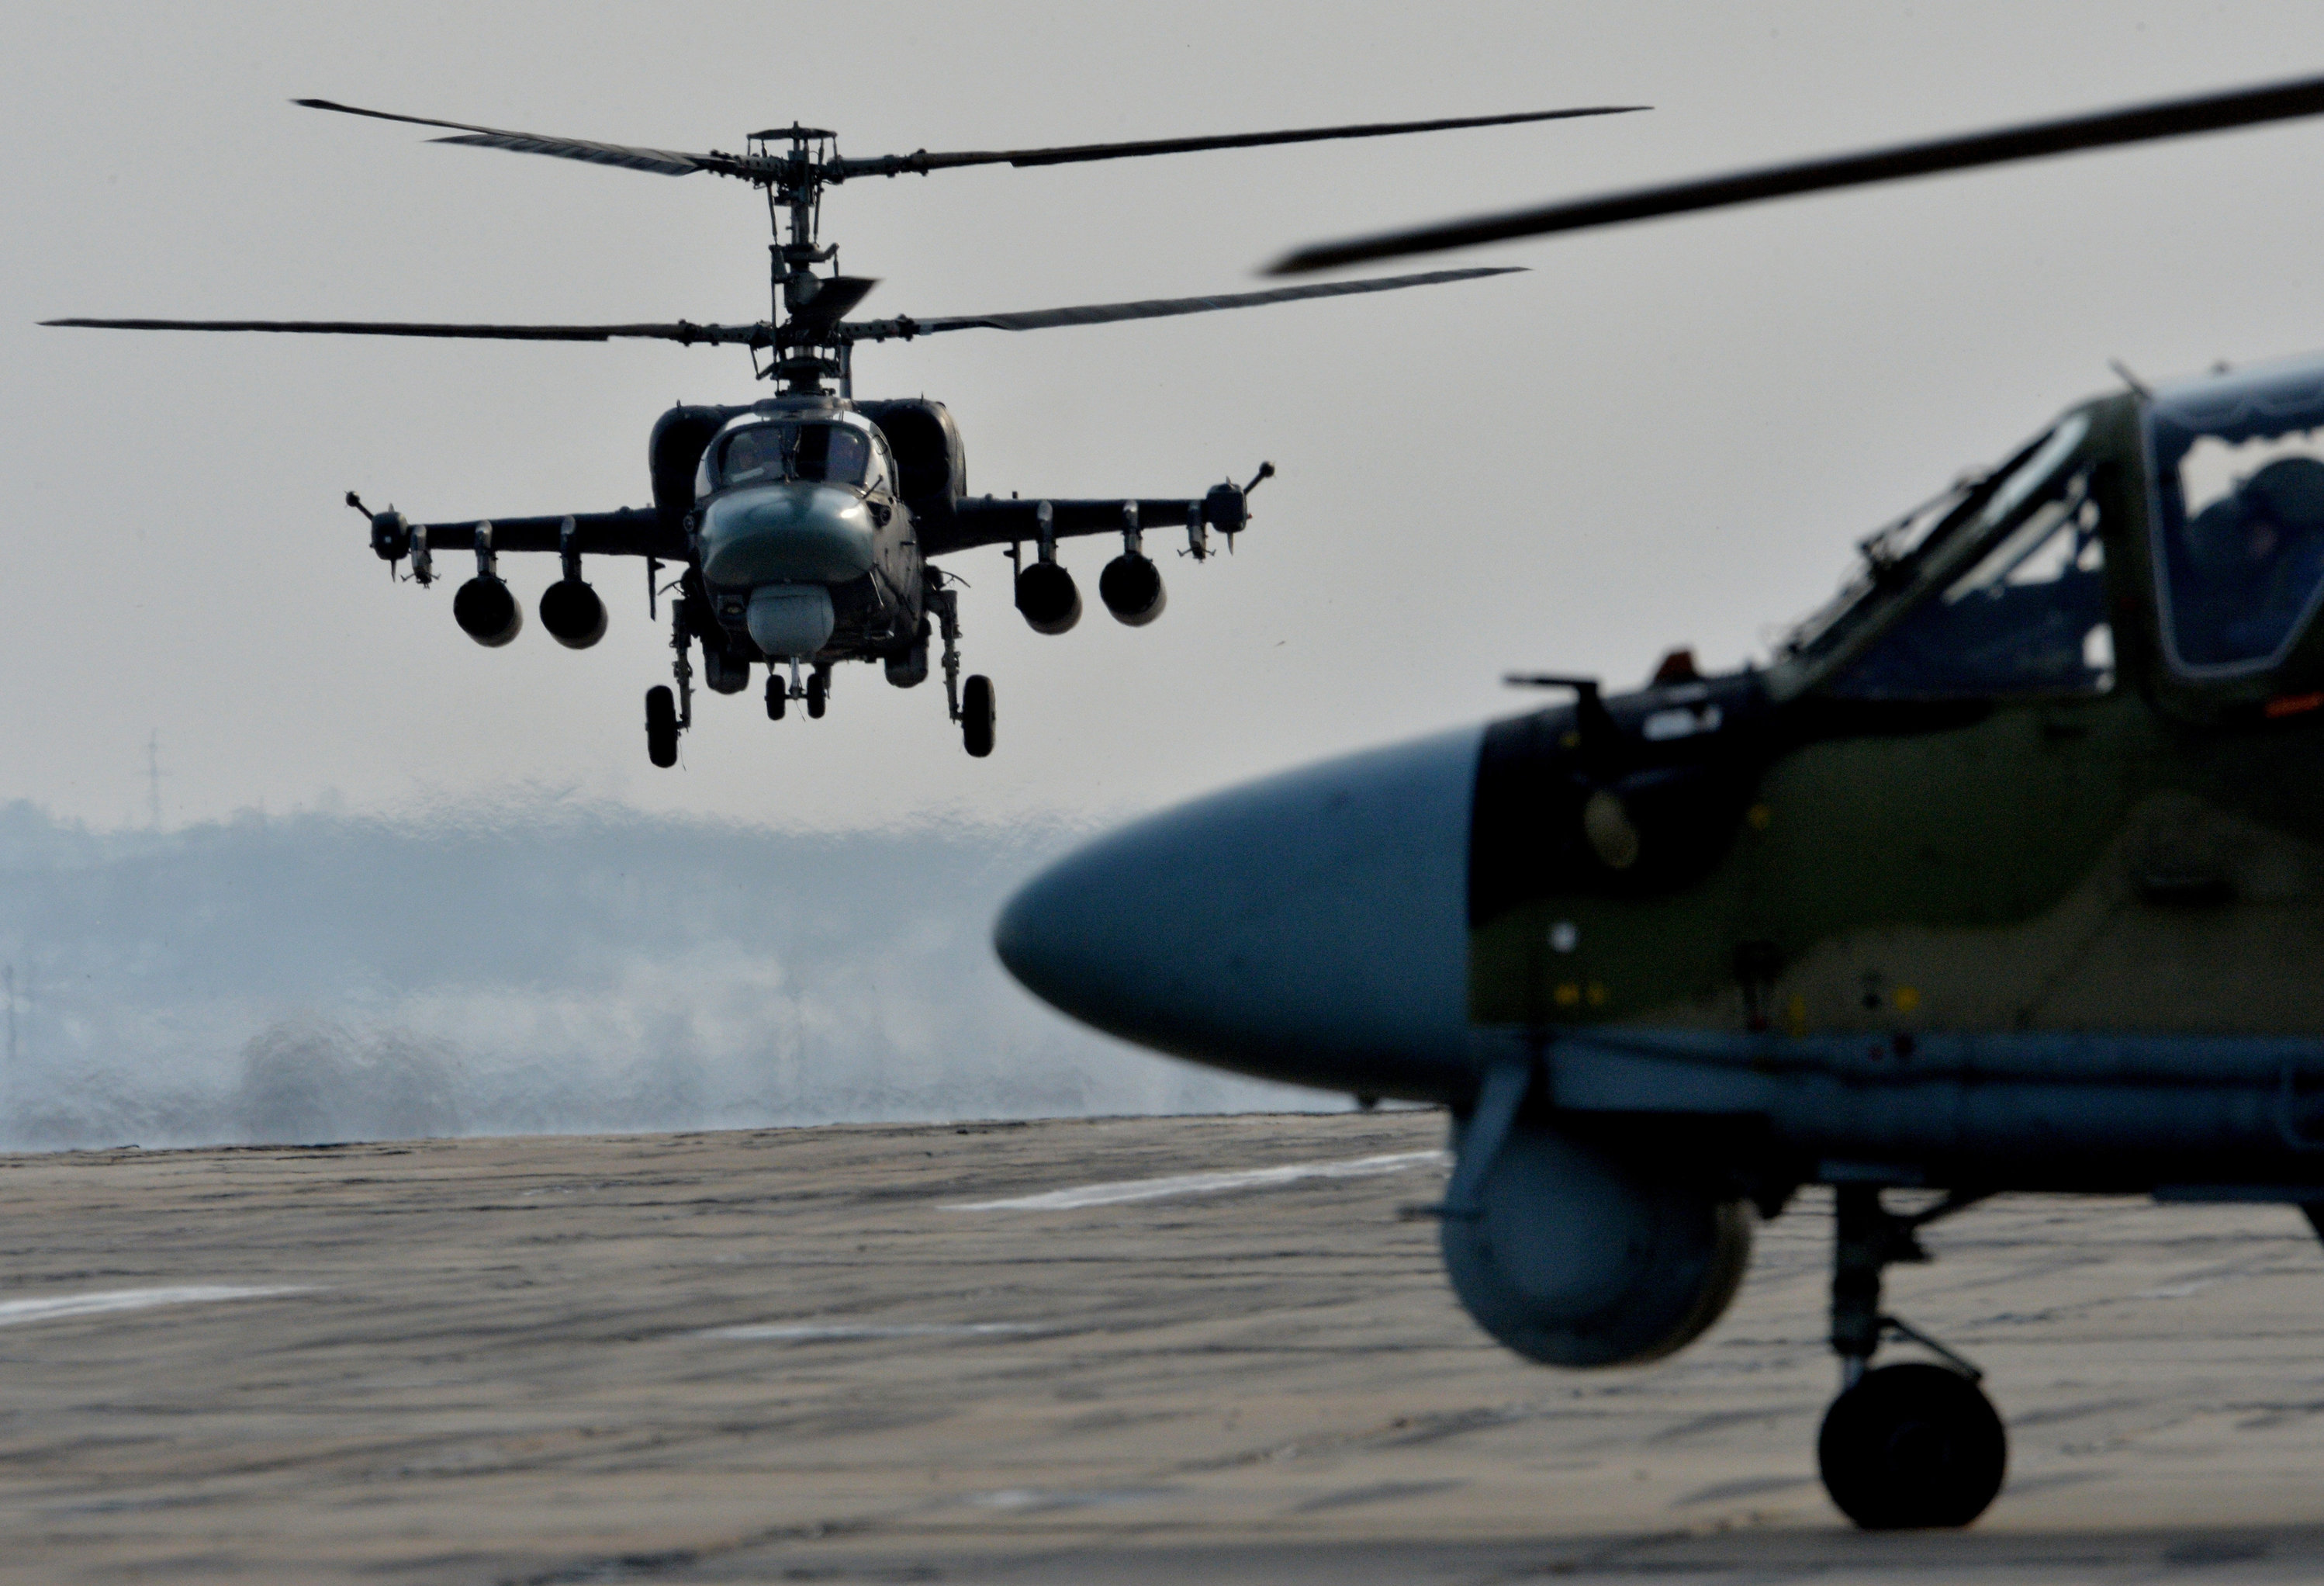 Ka-52 Alligator helicopters during tactical flight training. (File)